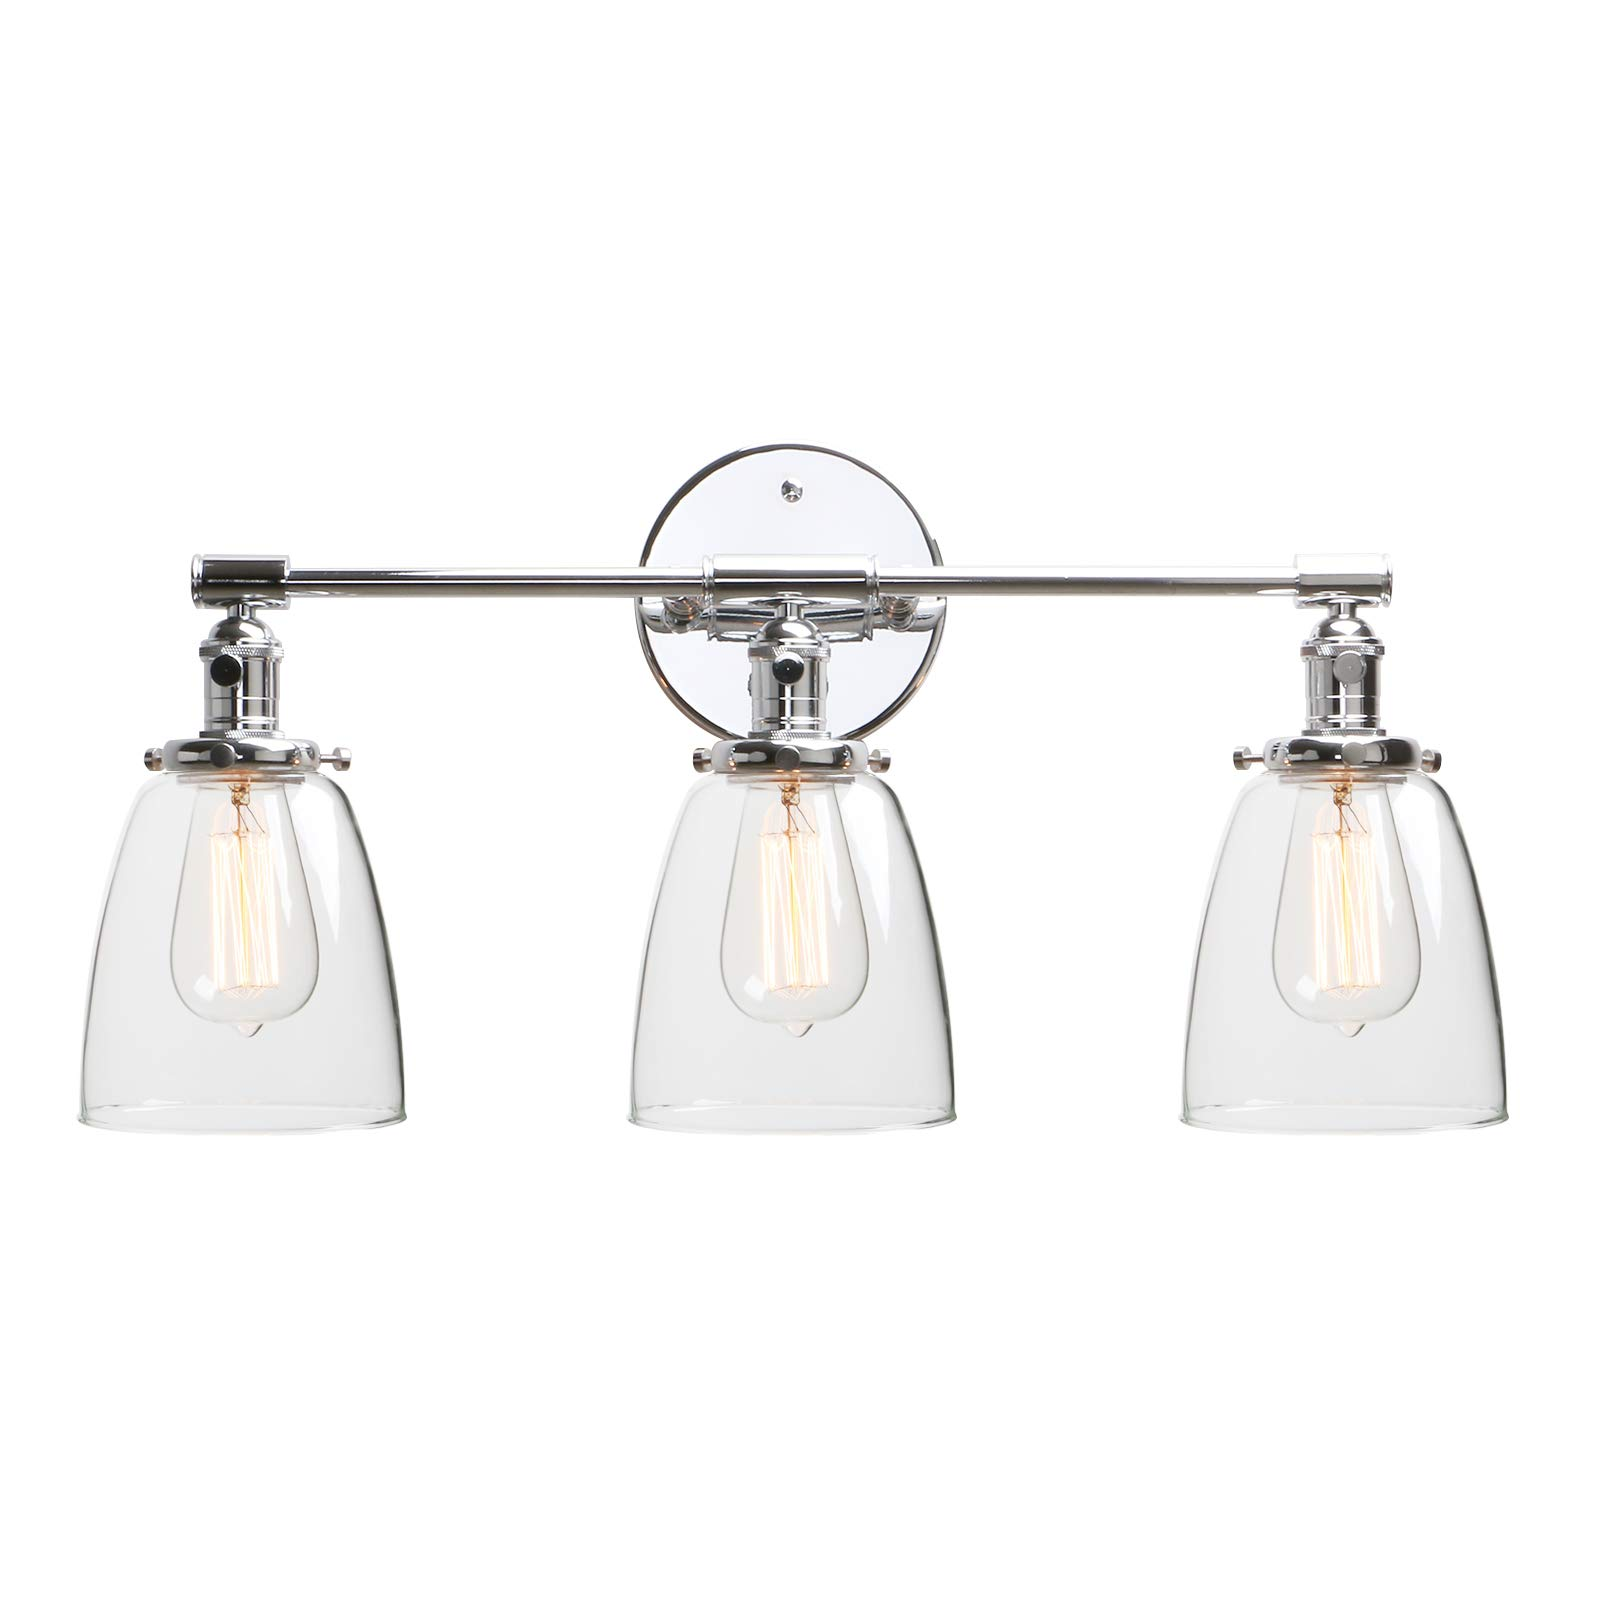 """Phansthy 3 Light Bathroom Vanity Light Industrial Wall Sconce with ON/Off Button and 5.6"""" Dome Clear Glass Shade, Polished Chrome"""